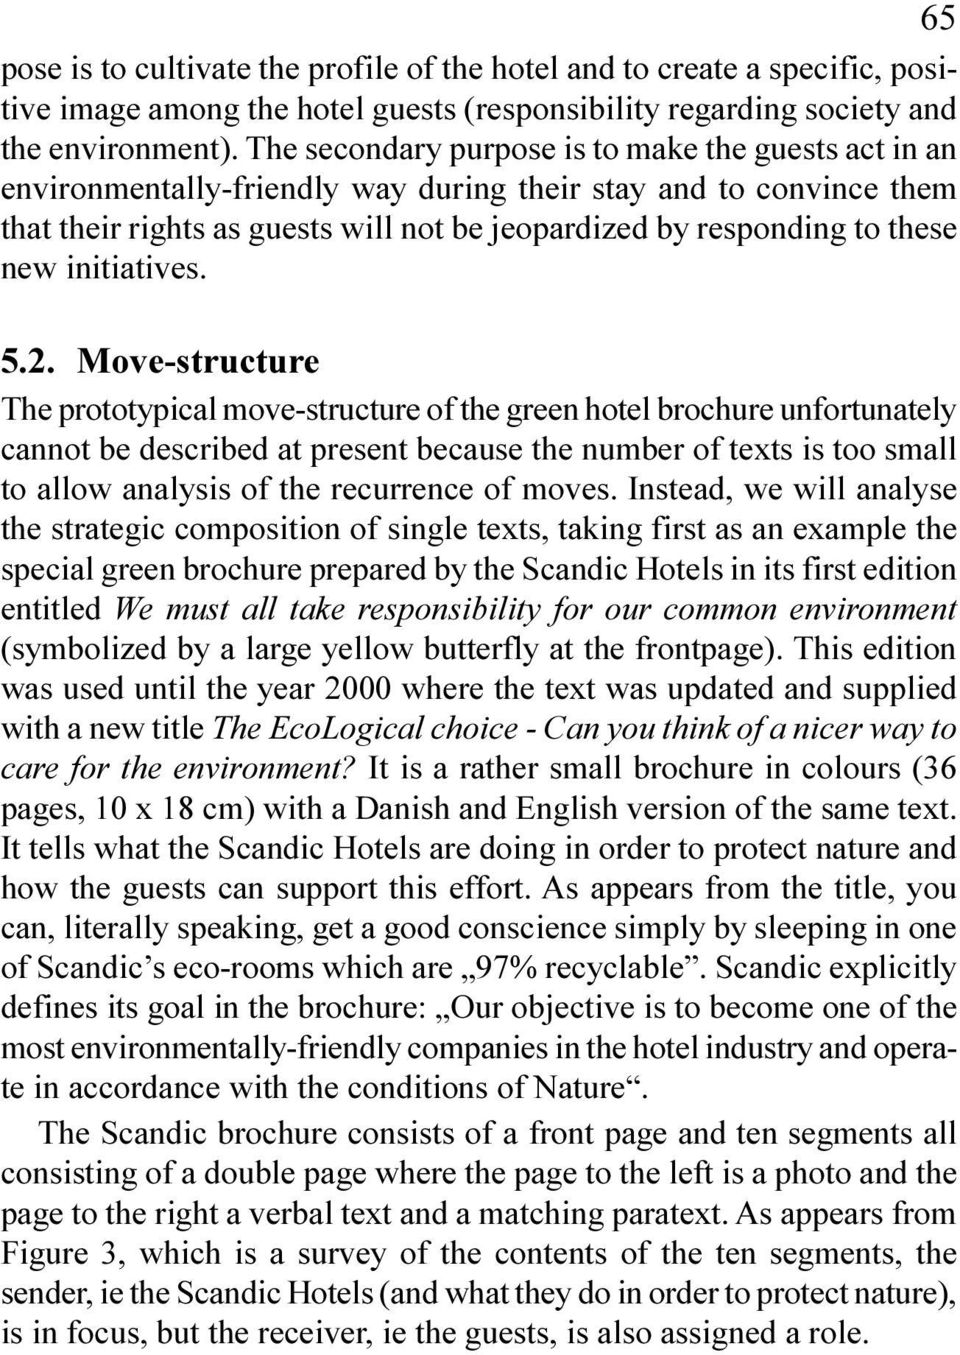 Move-structure The prototypical move-structure of the green hotel brochure unfortunately cannot be described at present because the number of texts is too small to allow analysis of the recurrence of